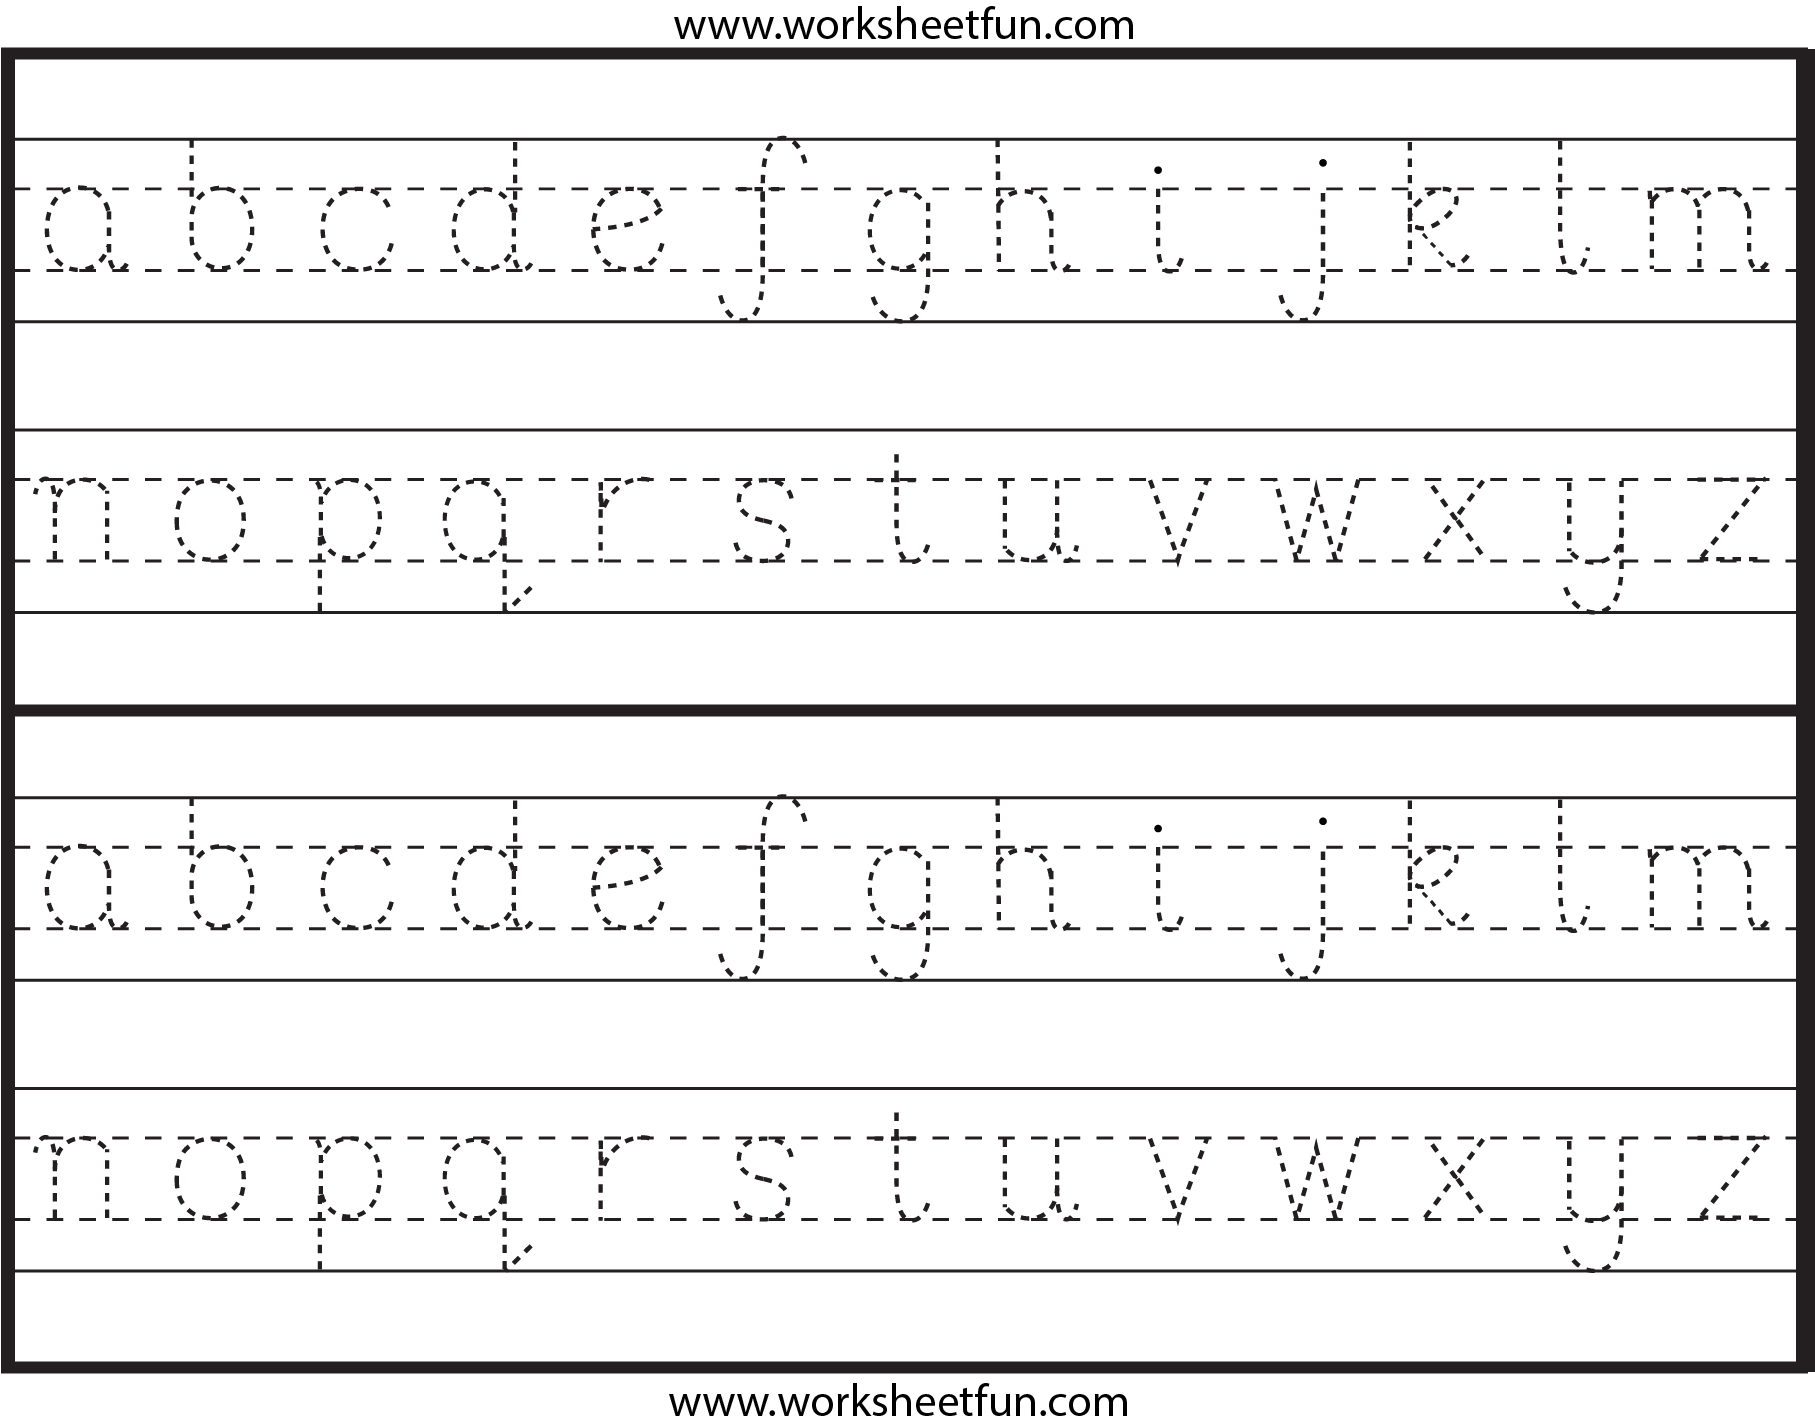 Printables Traceable Alphabet Worksheet letters worksheets versaldobip traceable versaldobip